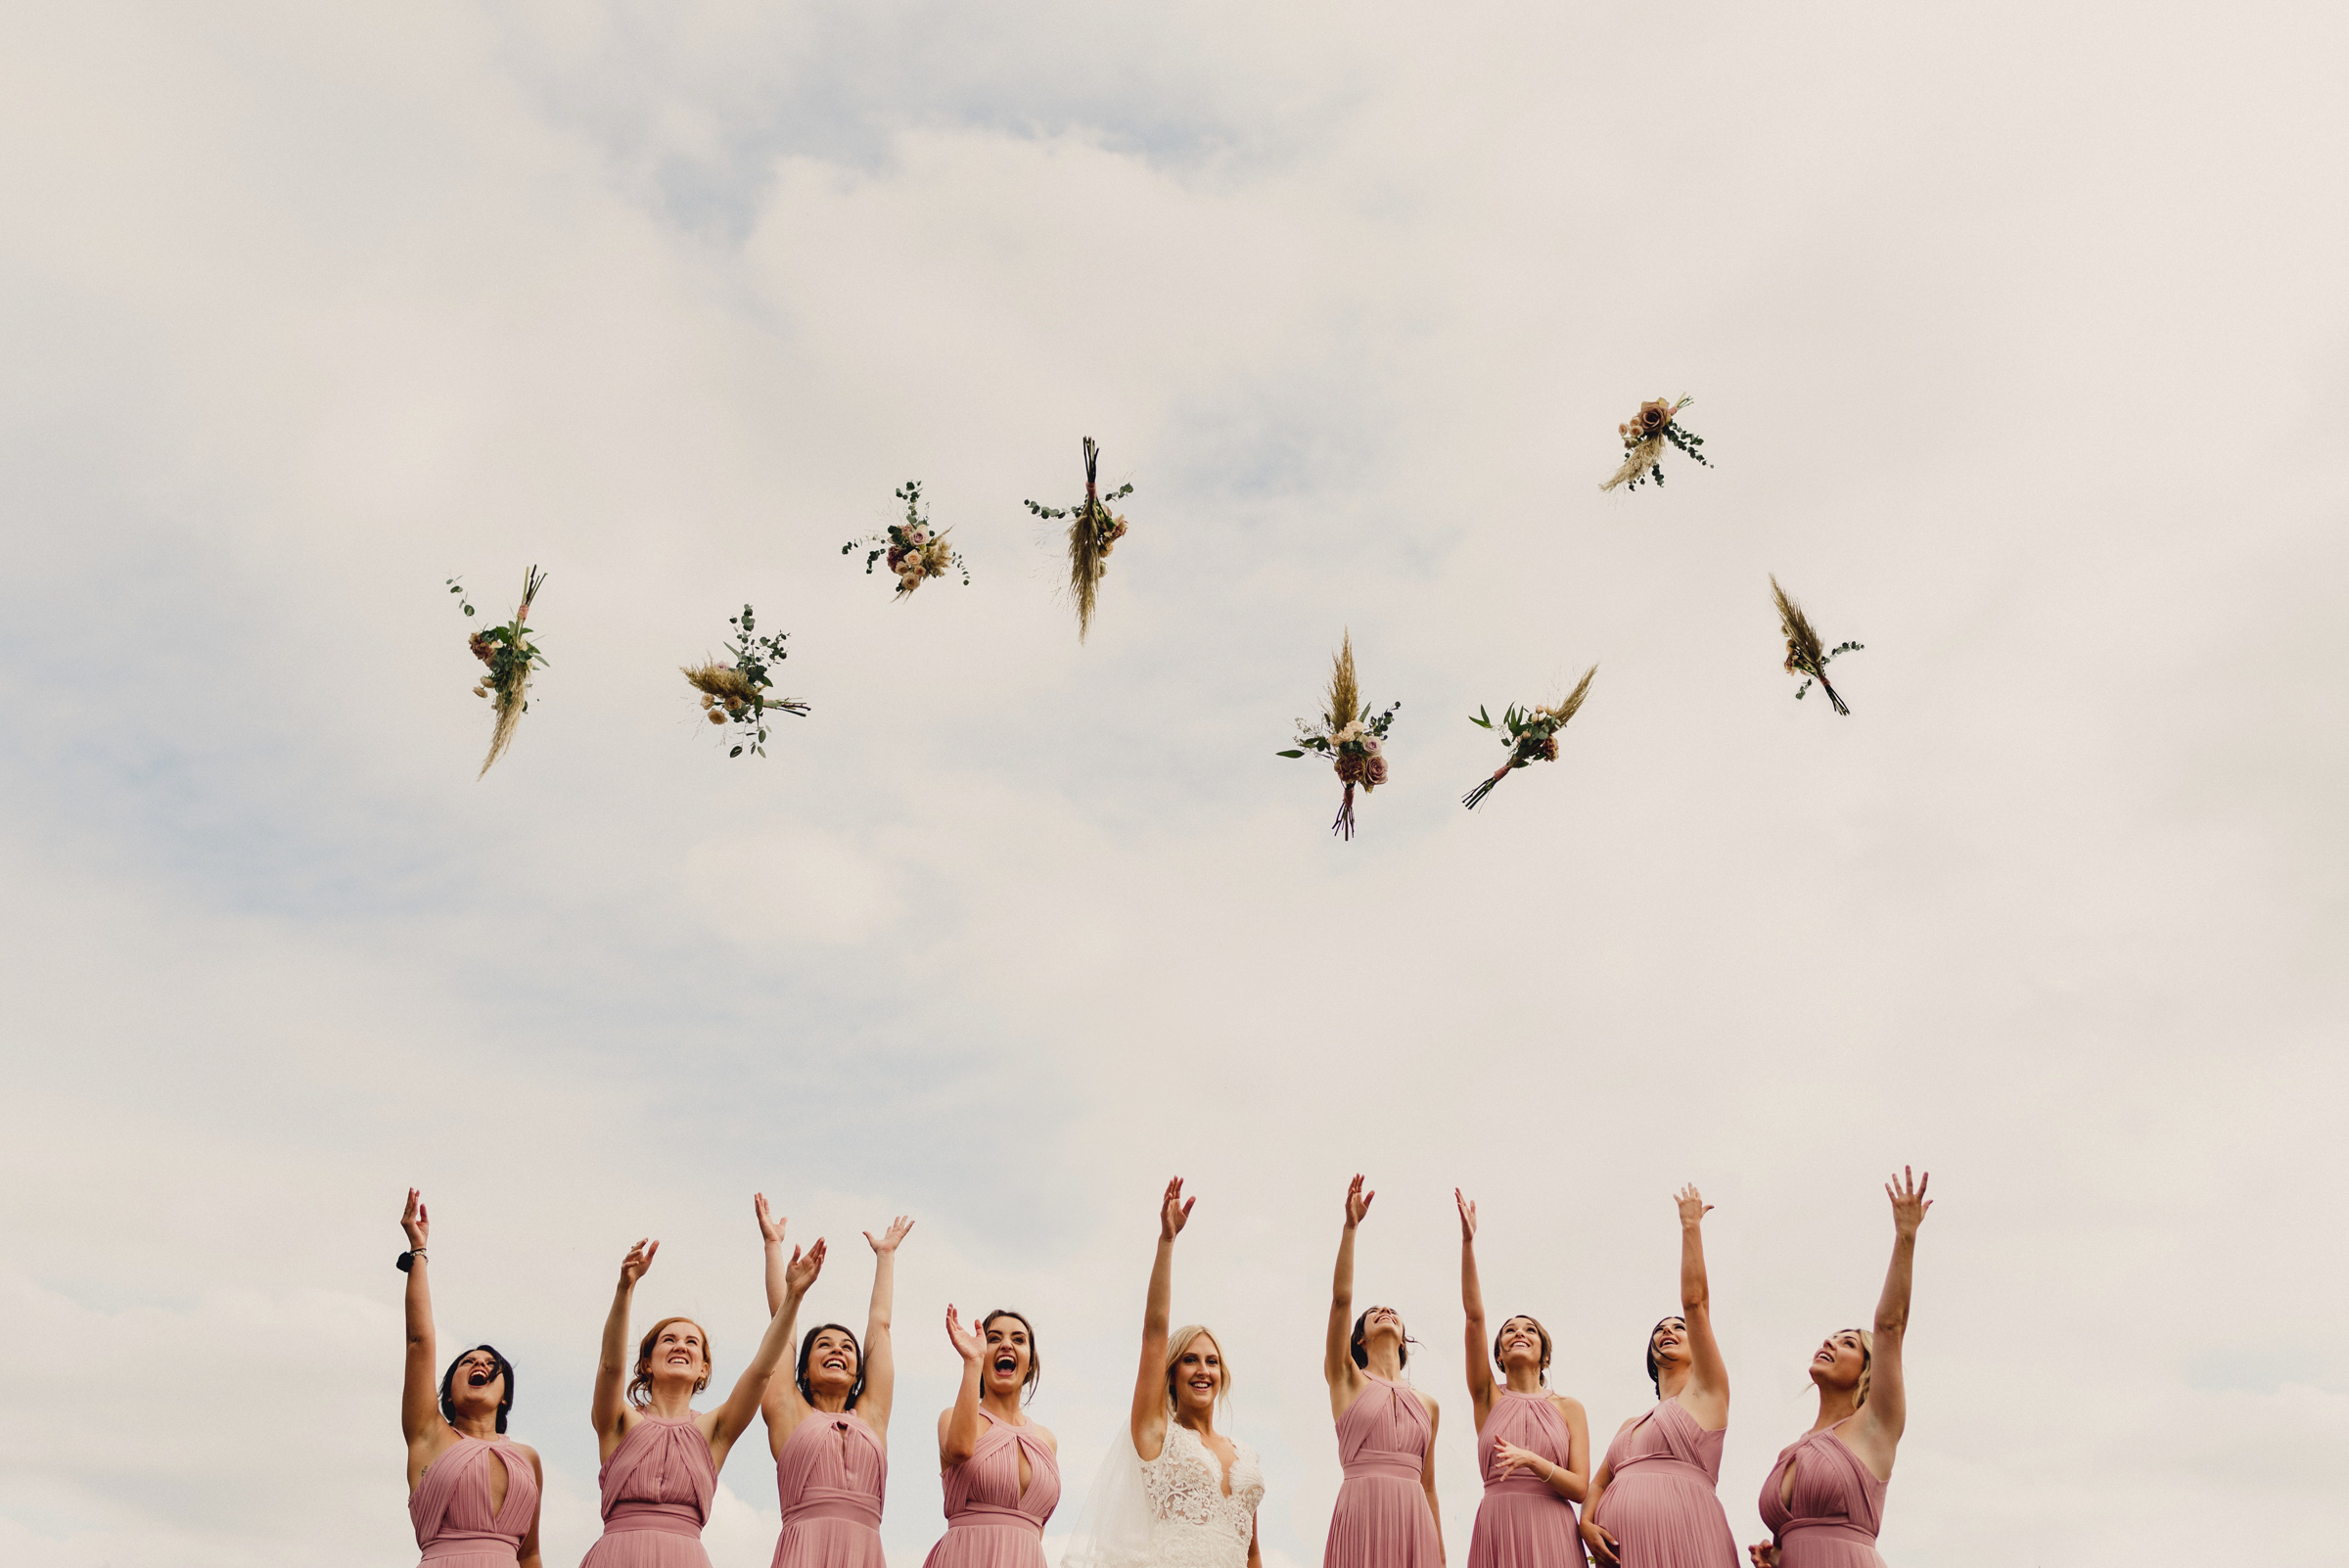 Bridal party in pink crepe halter gowns tossing their bouquets - photo by Miki Studios - London